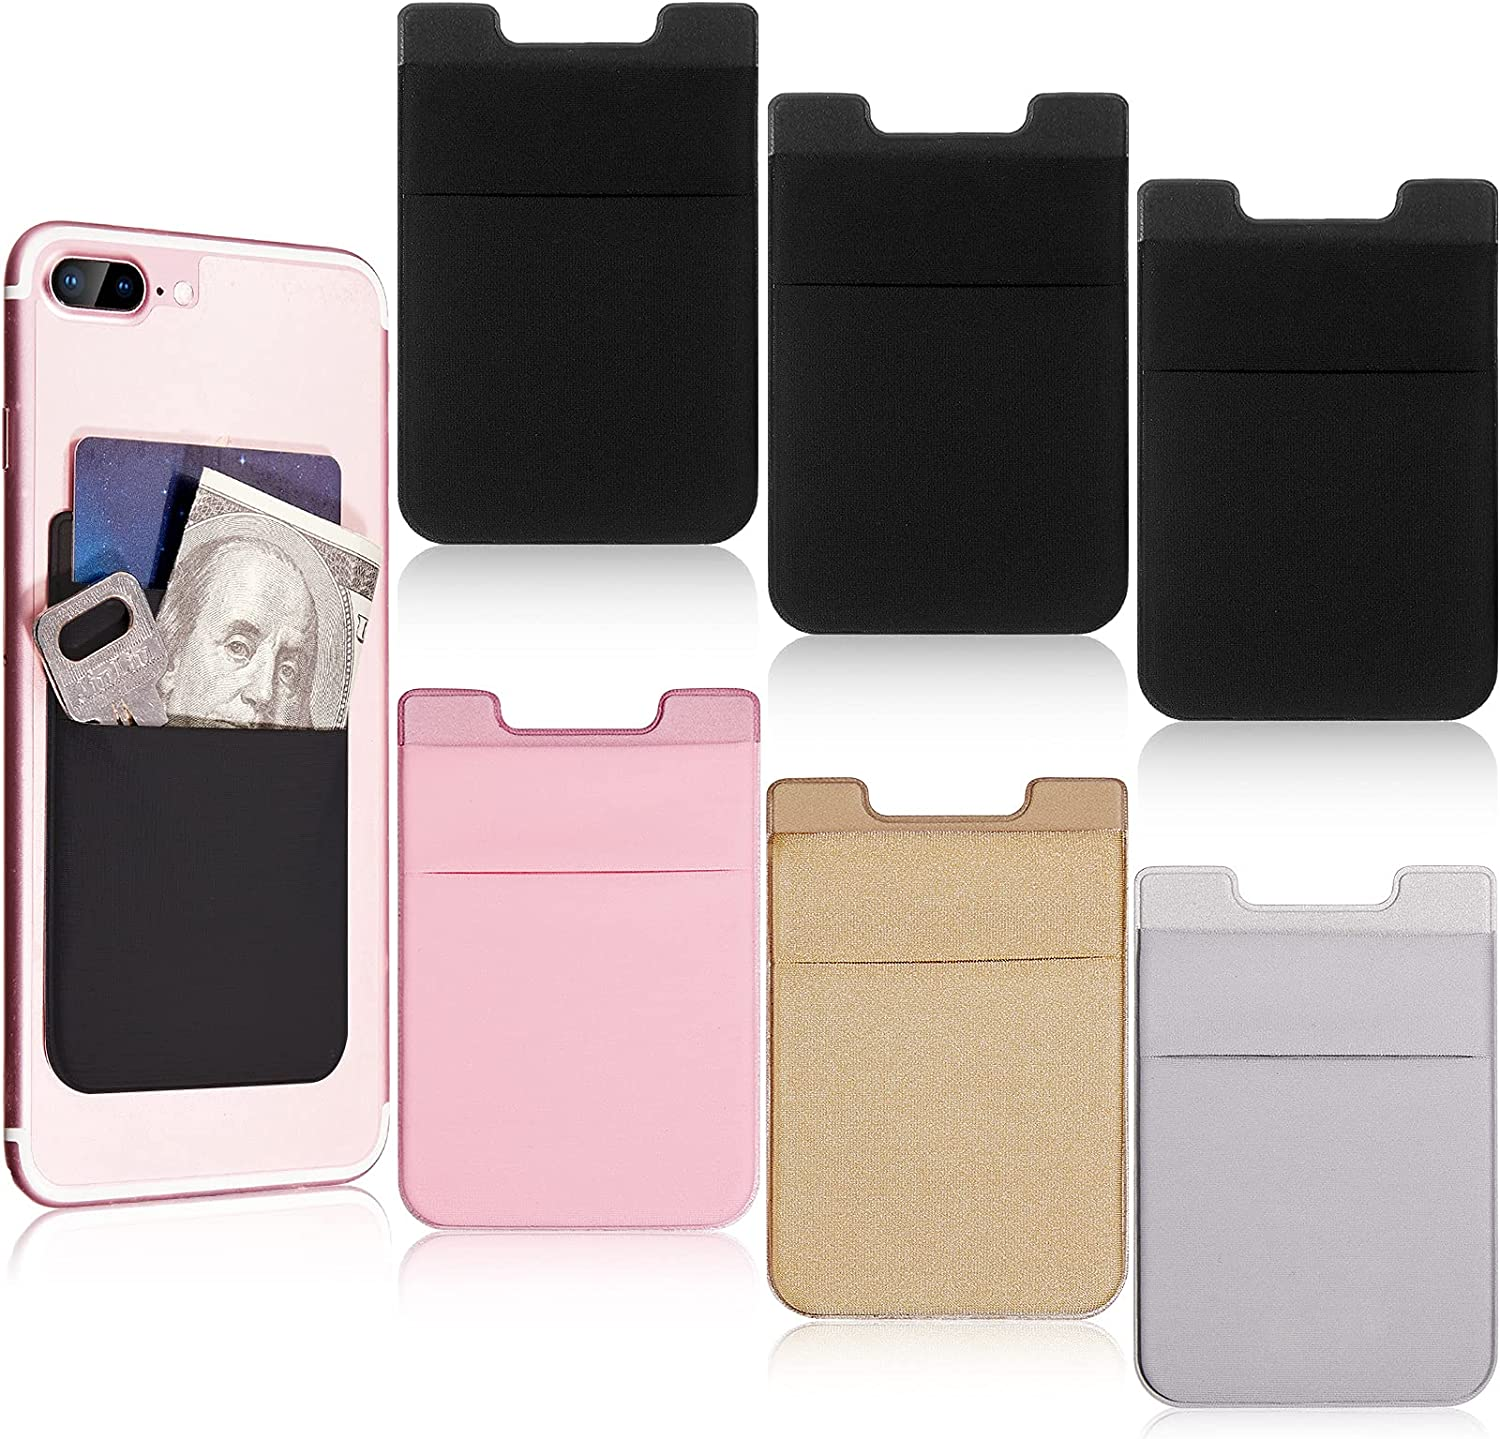 Frienda 6 Pieces Complete Free Shipping Phone Wallet Holder Ph Card Stretchy Daily bargain sale Cell